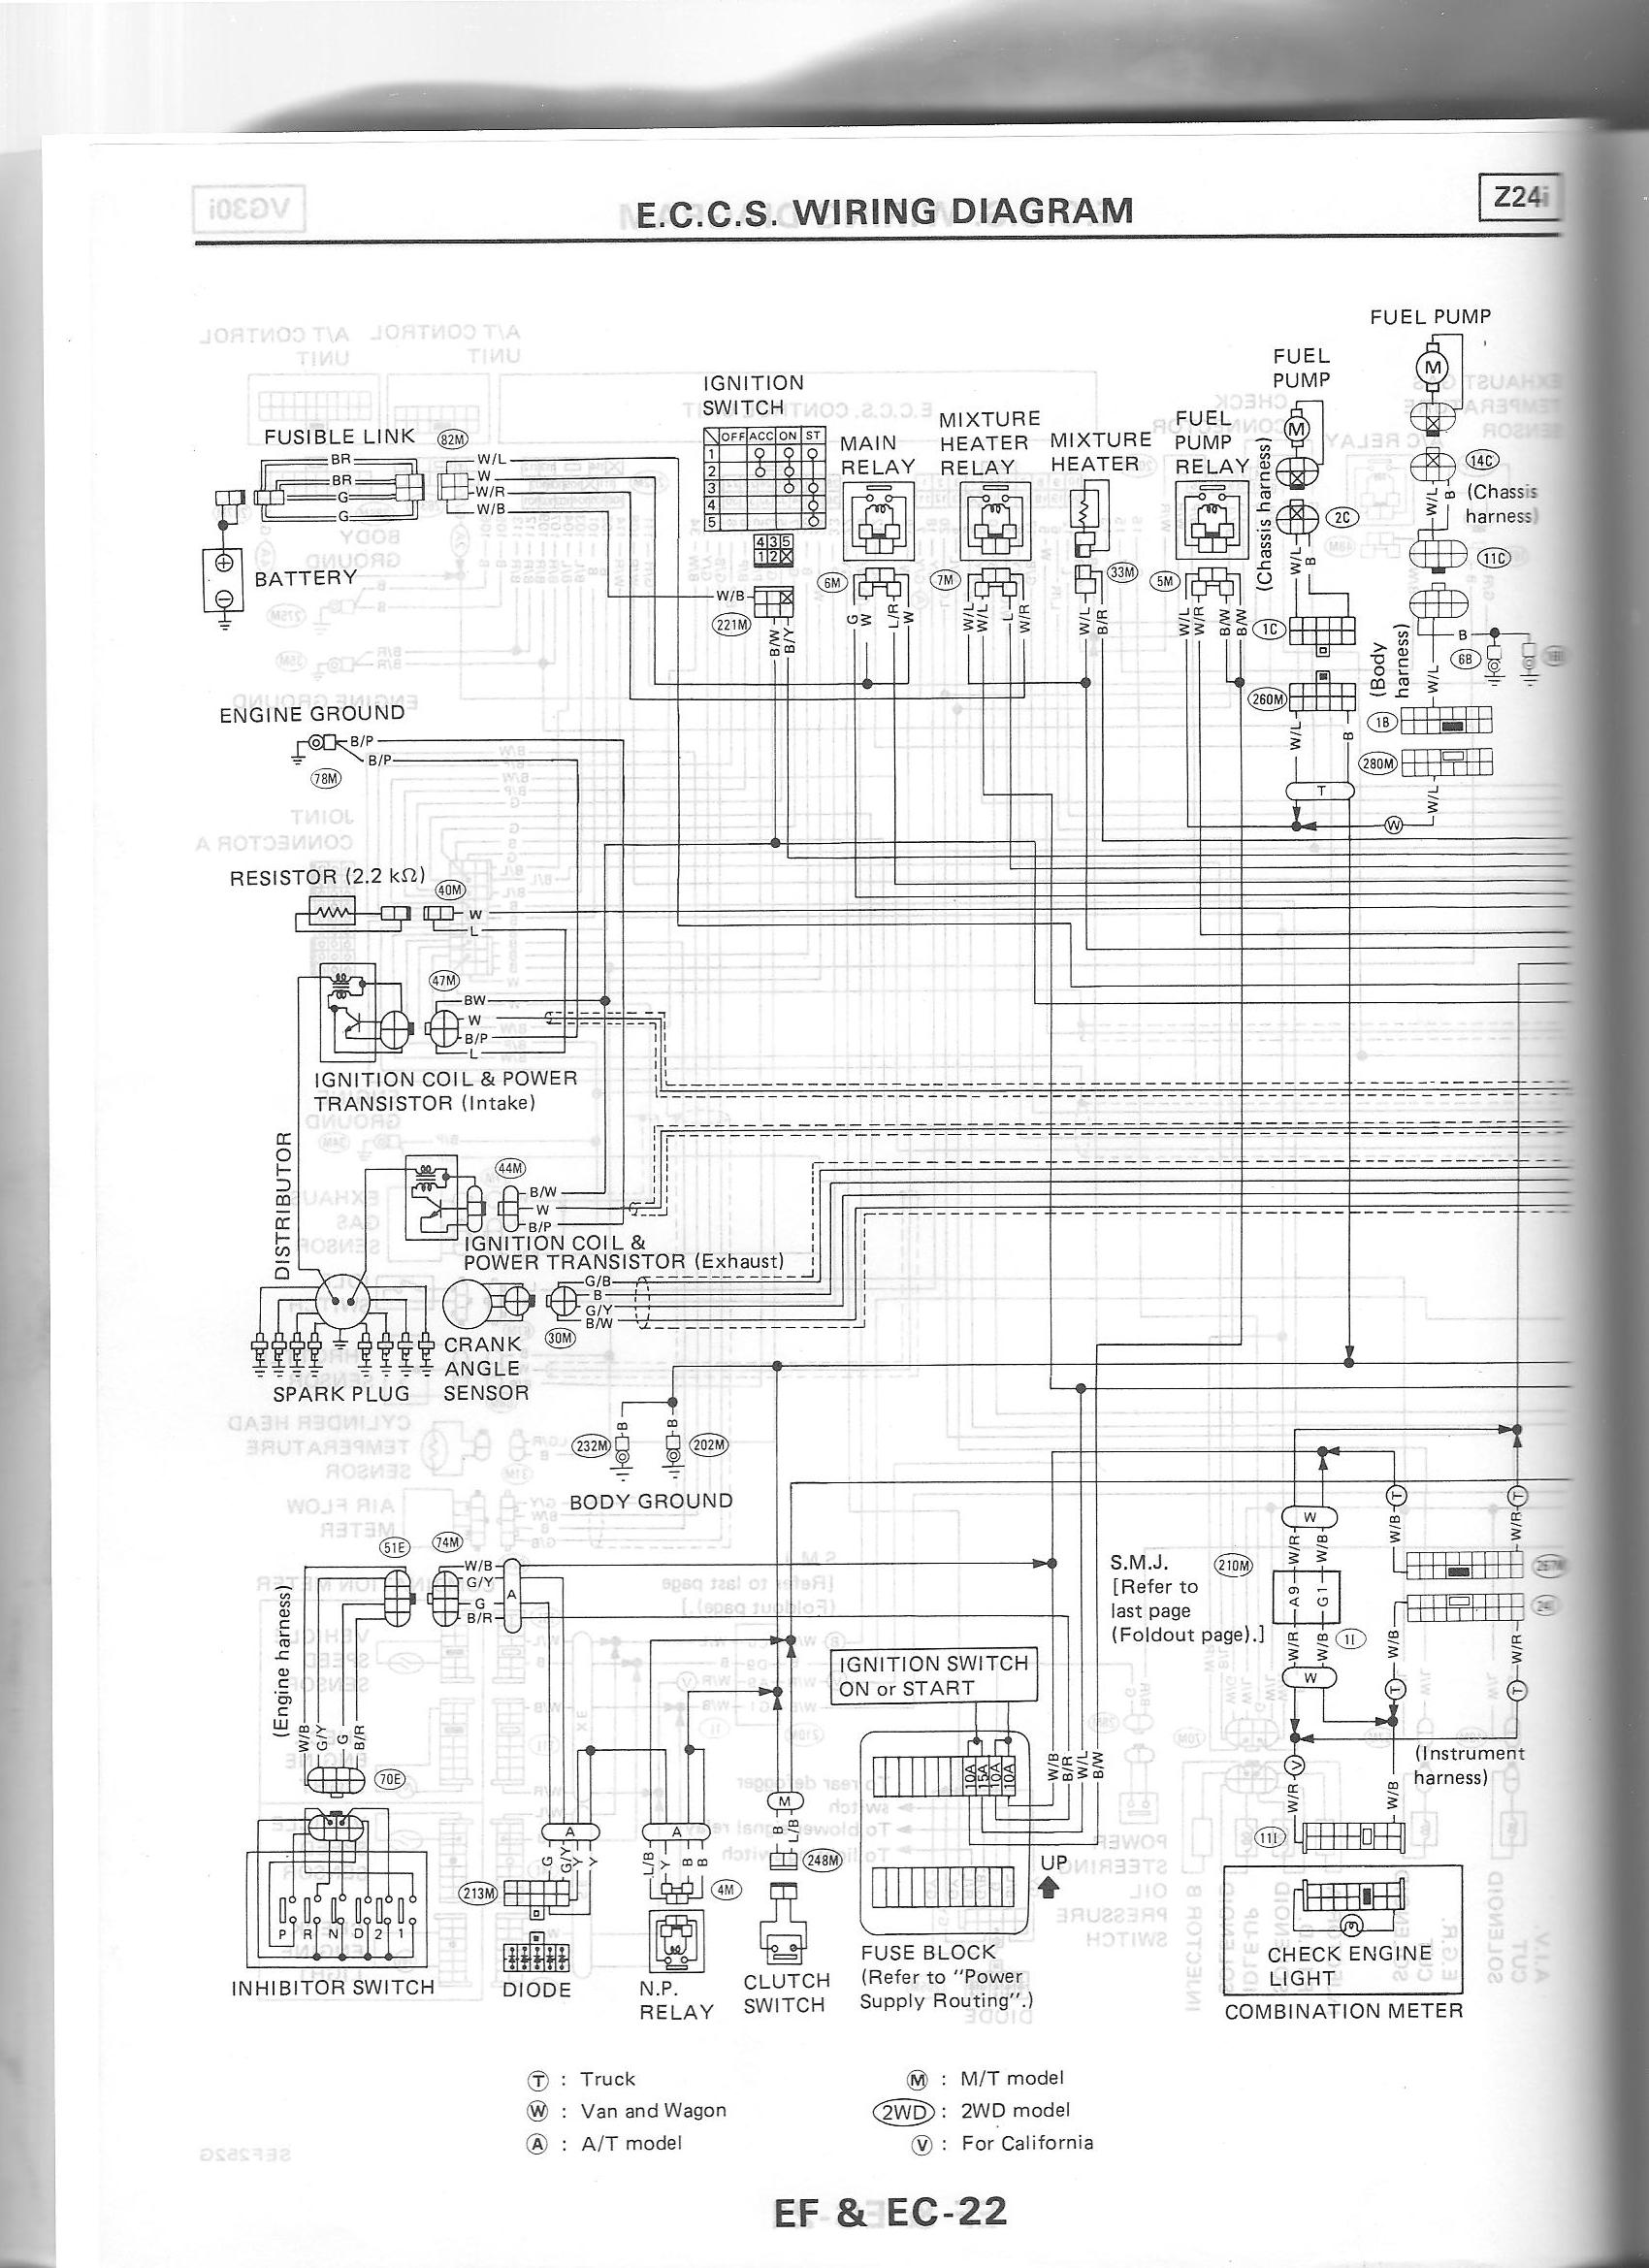 wiring1_88 nissan nut ka24e wiring harness diagram at mifinder.co